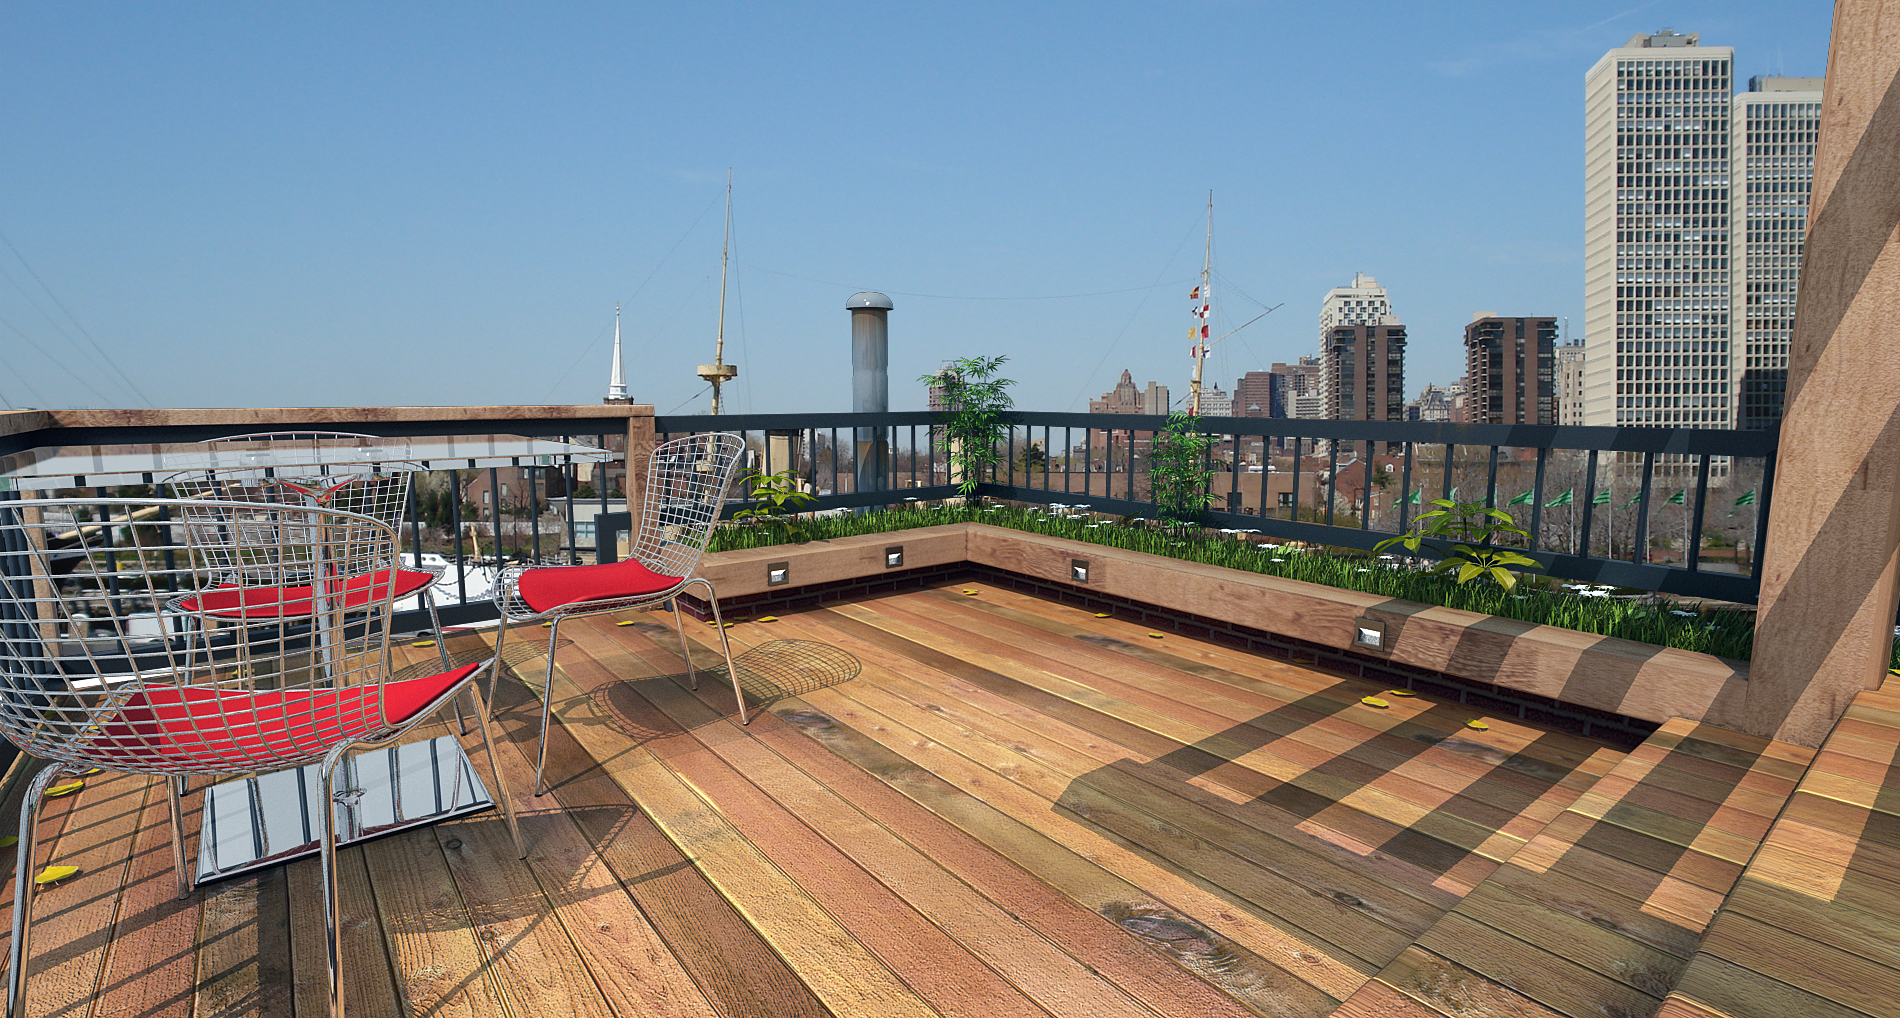 Deck designs rooftop deck design ideas for Roof deck design